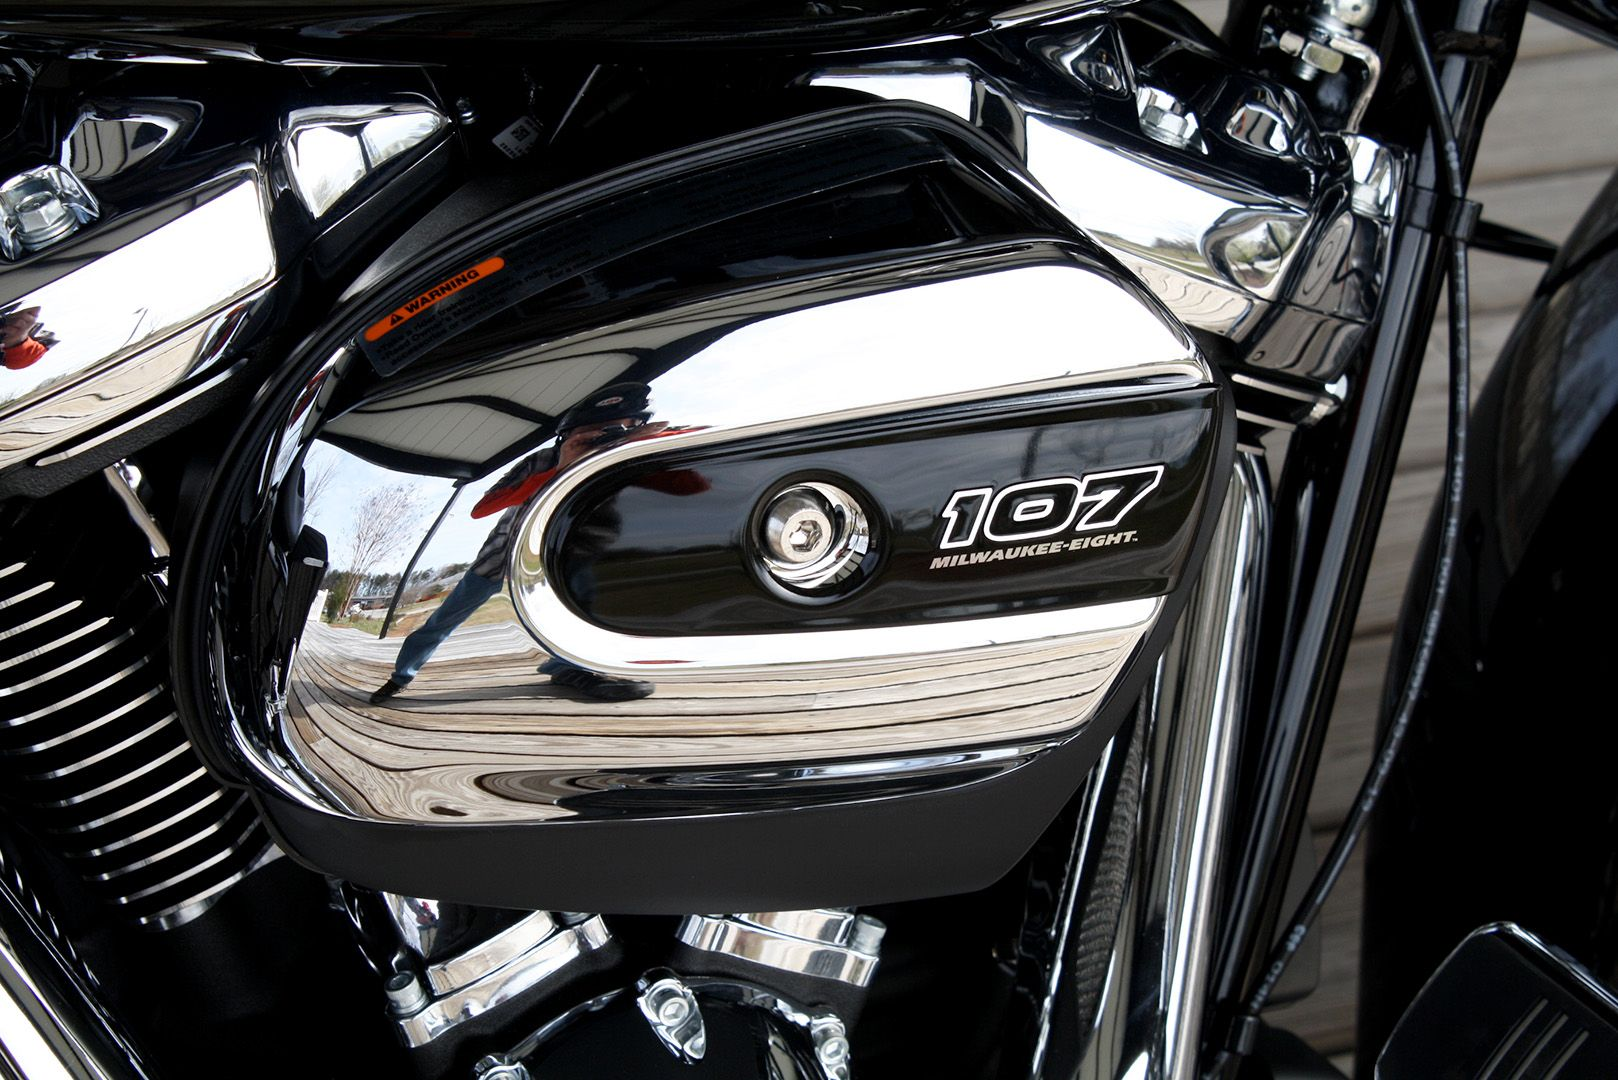 New 2020 Harley-Davidson Road Glide